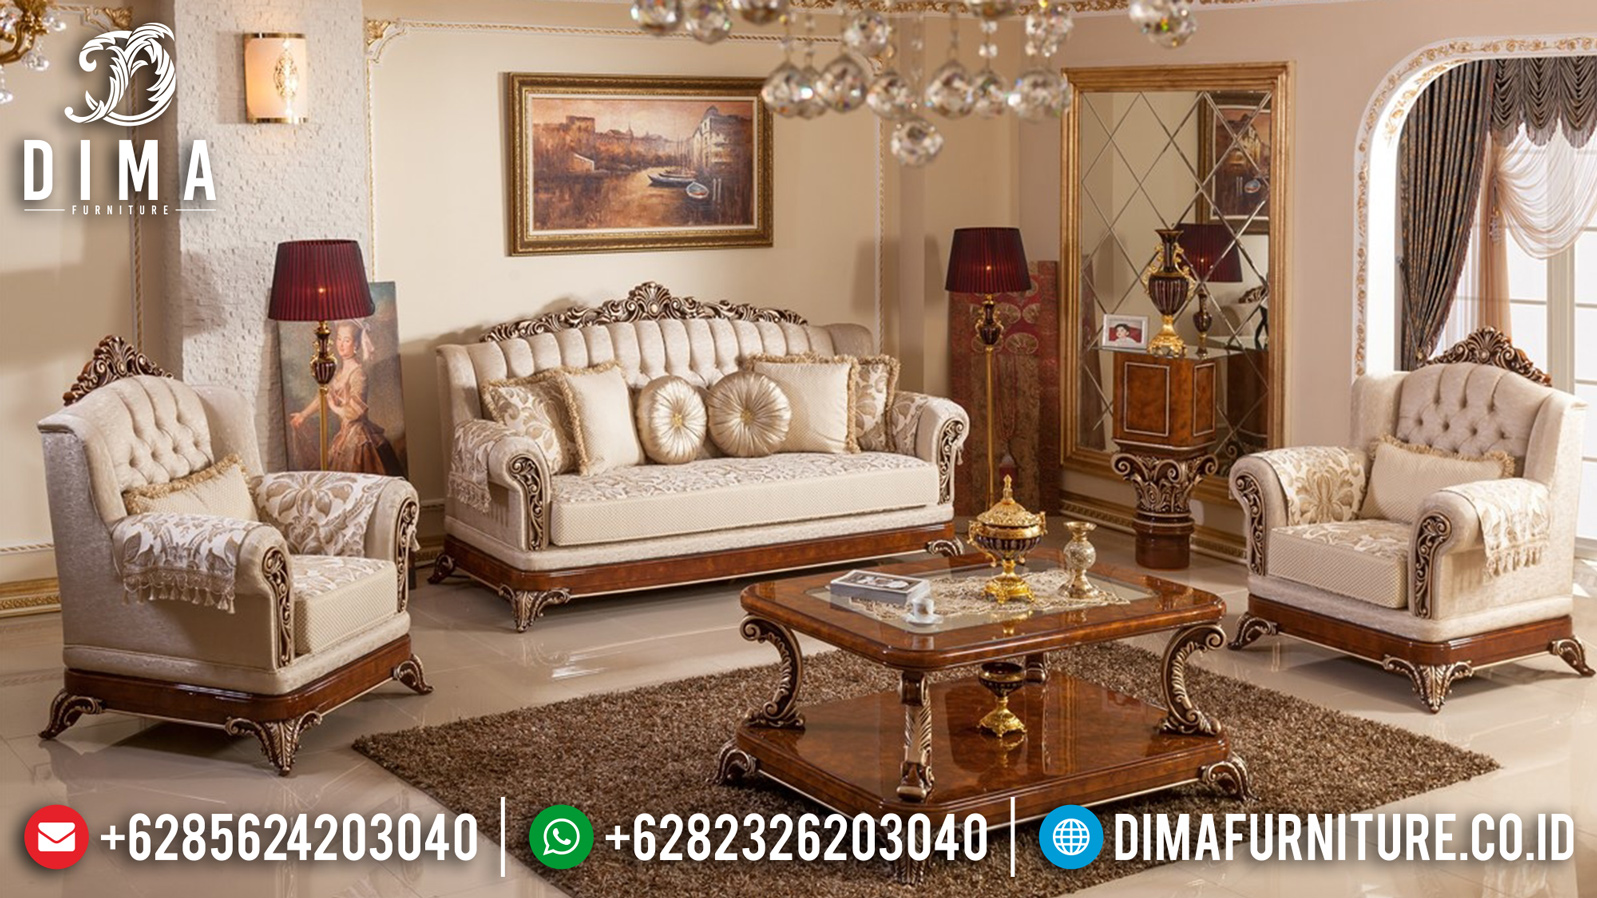 Model Sofa Tamu Jepara 2019-2020 013 Dima Furniture Jepara